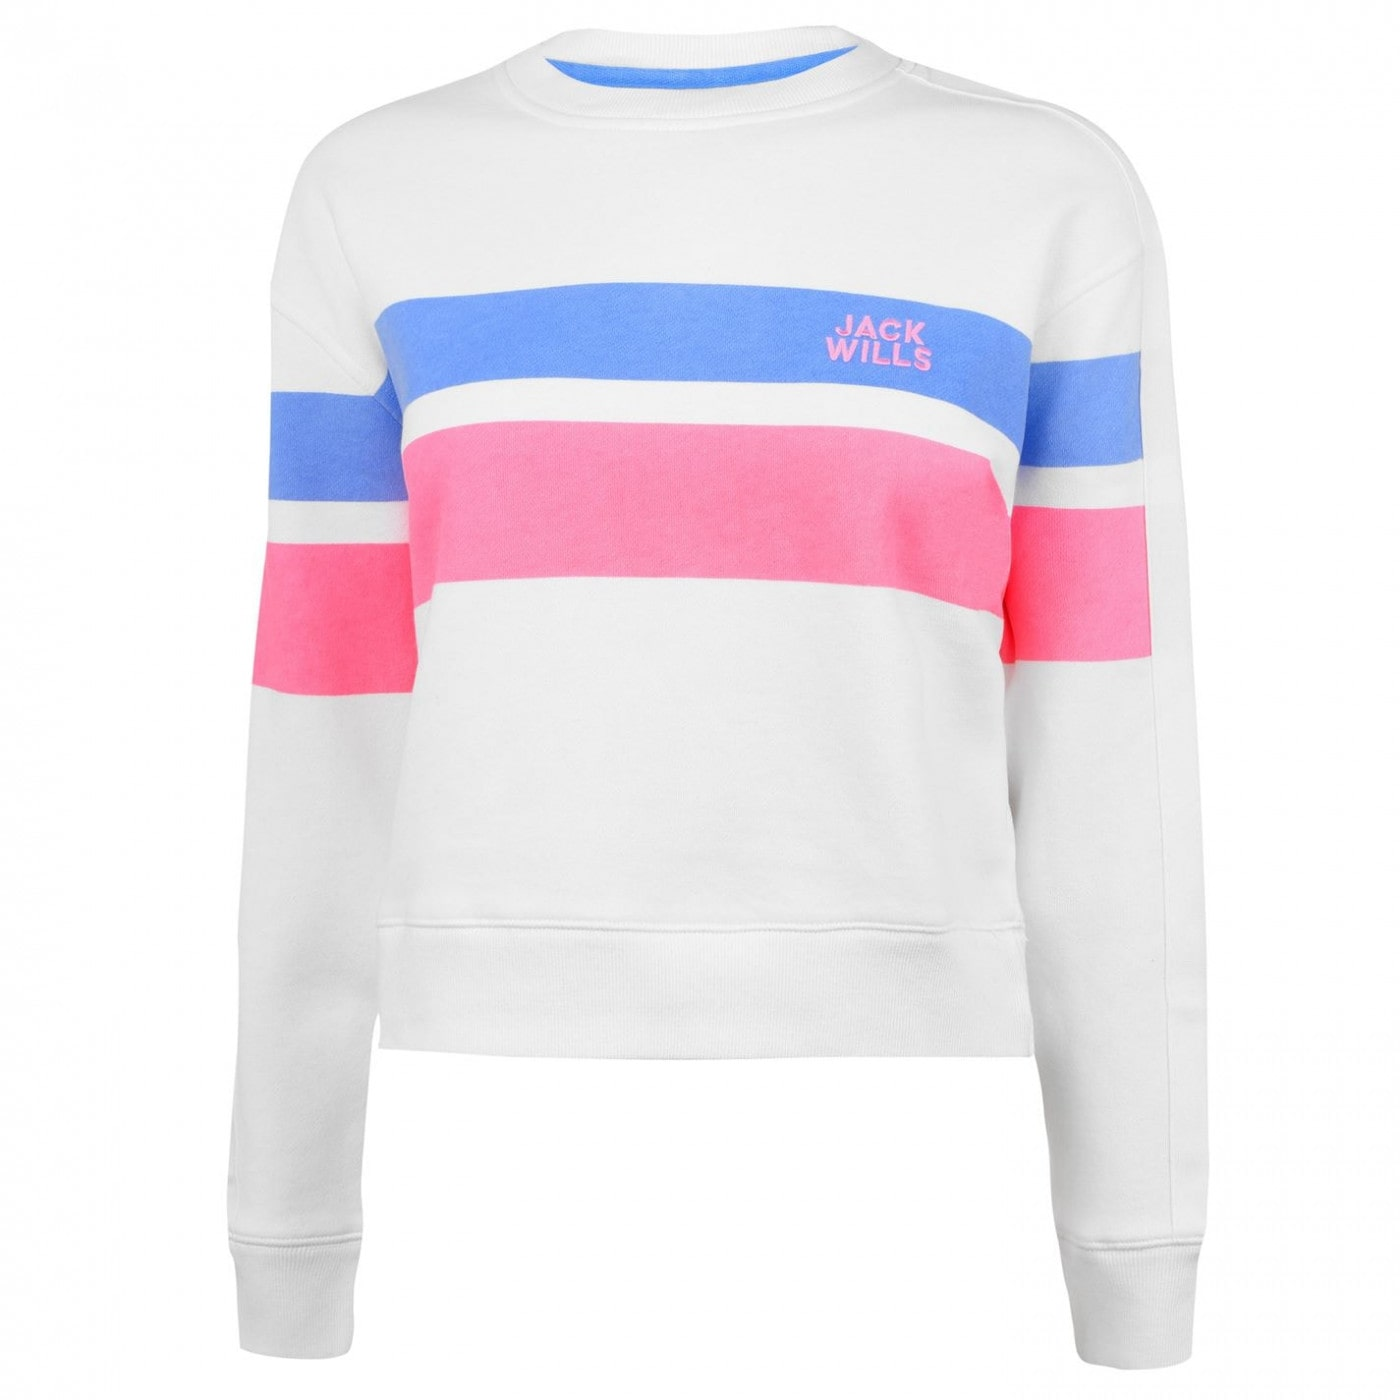 Jack Wills Mellor Track Stripe Crew Neck Sweatshirt